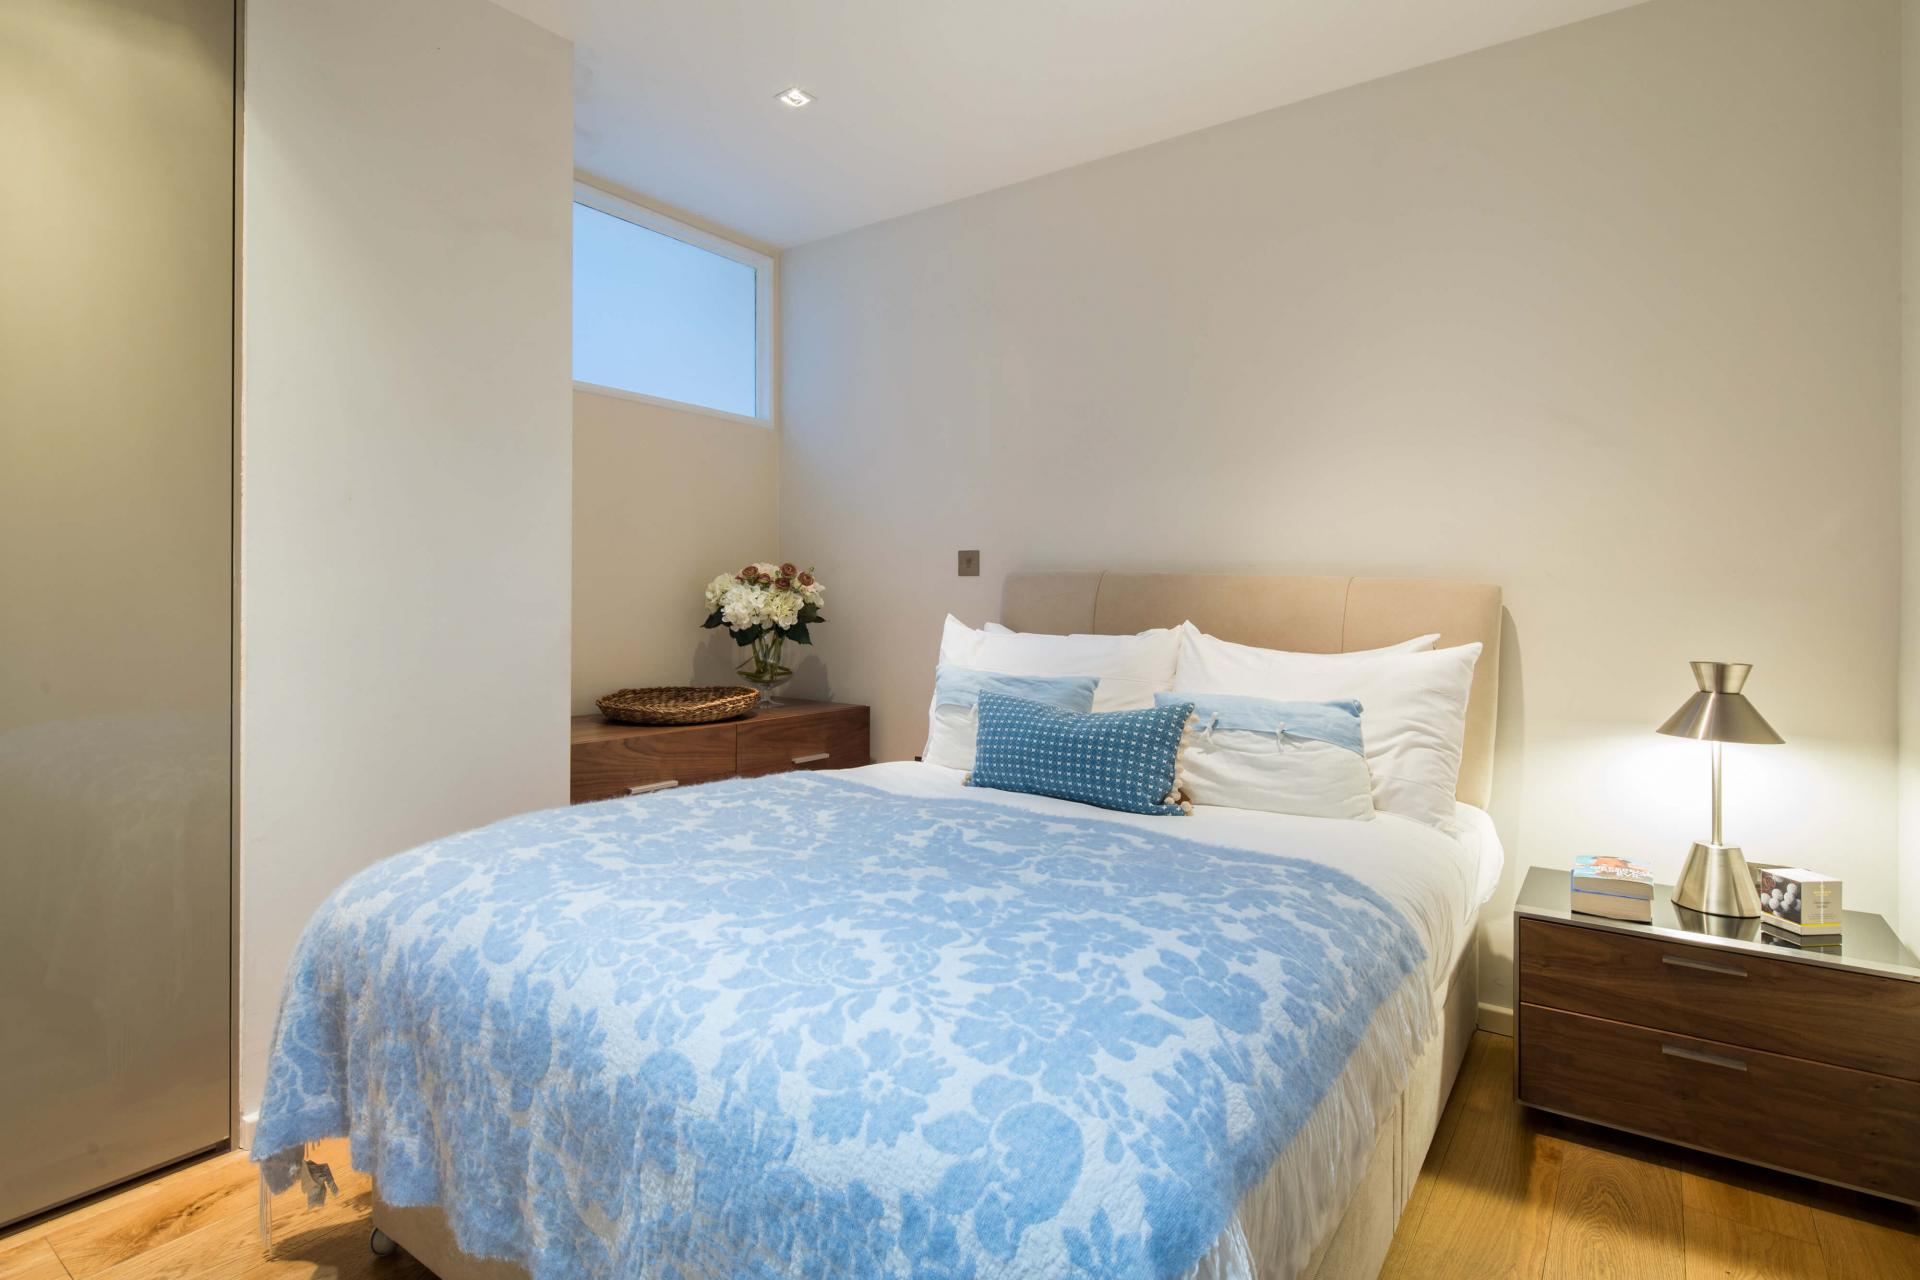 Cosy room at Meritas Court Apartments, Bayswater, London - Citybase Apartments